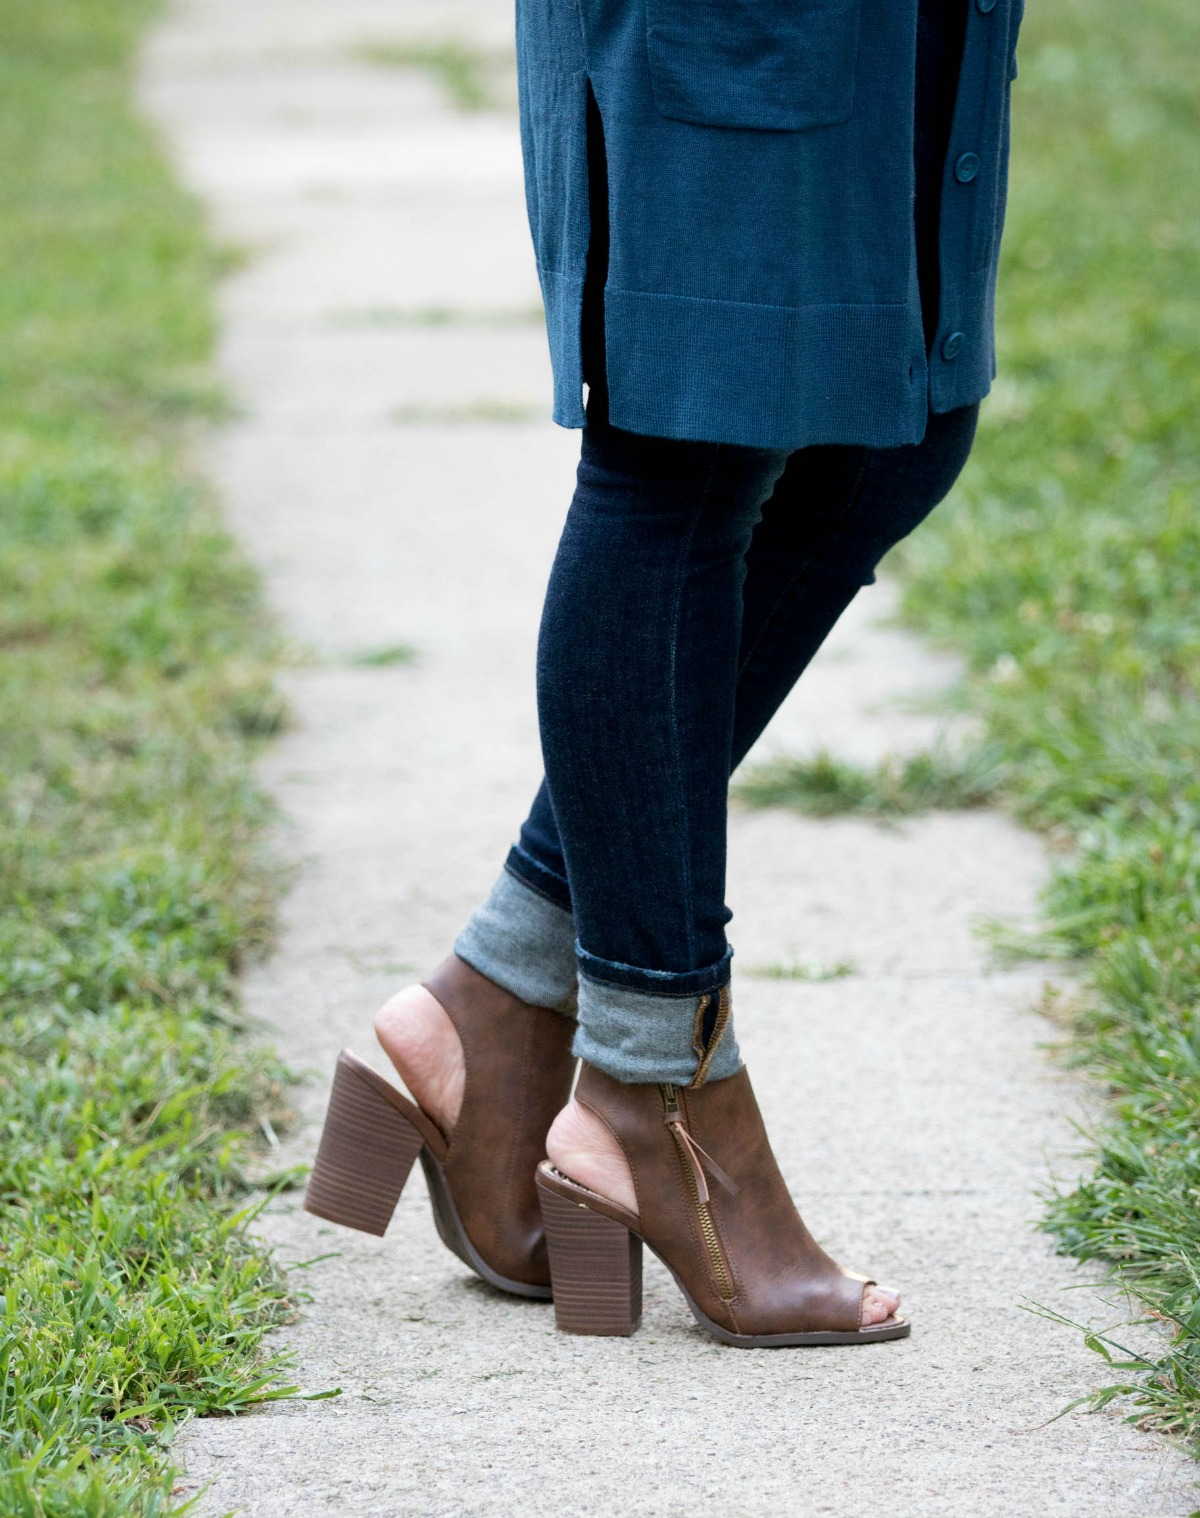 Fall Fashion-Peep Toe Booties from Payless